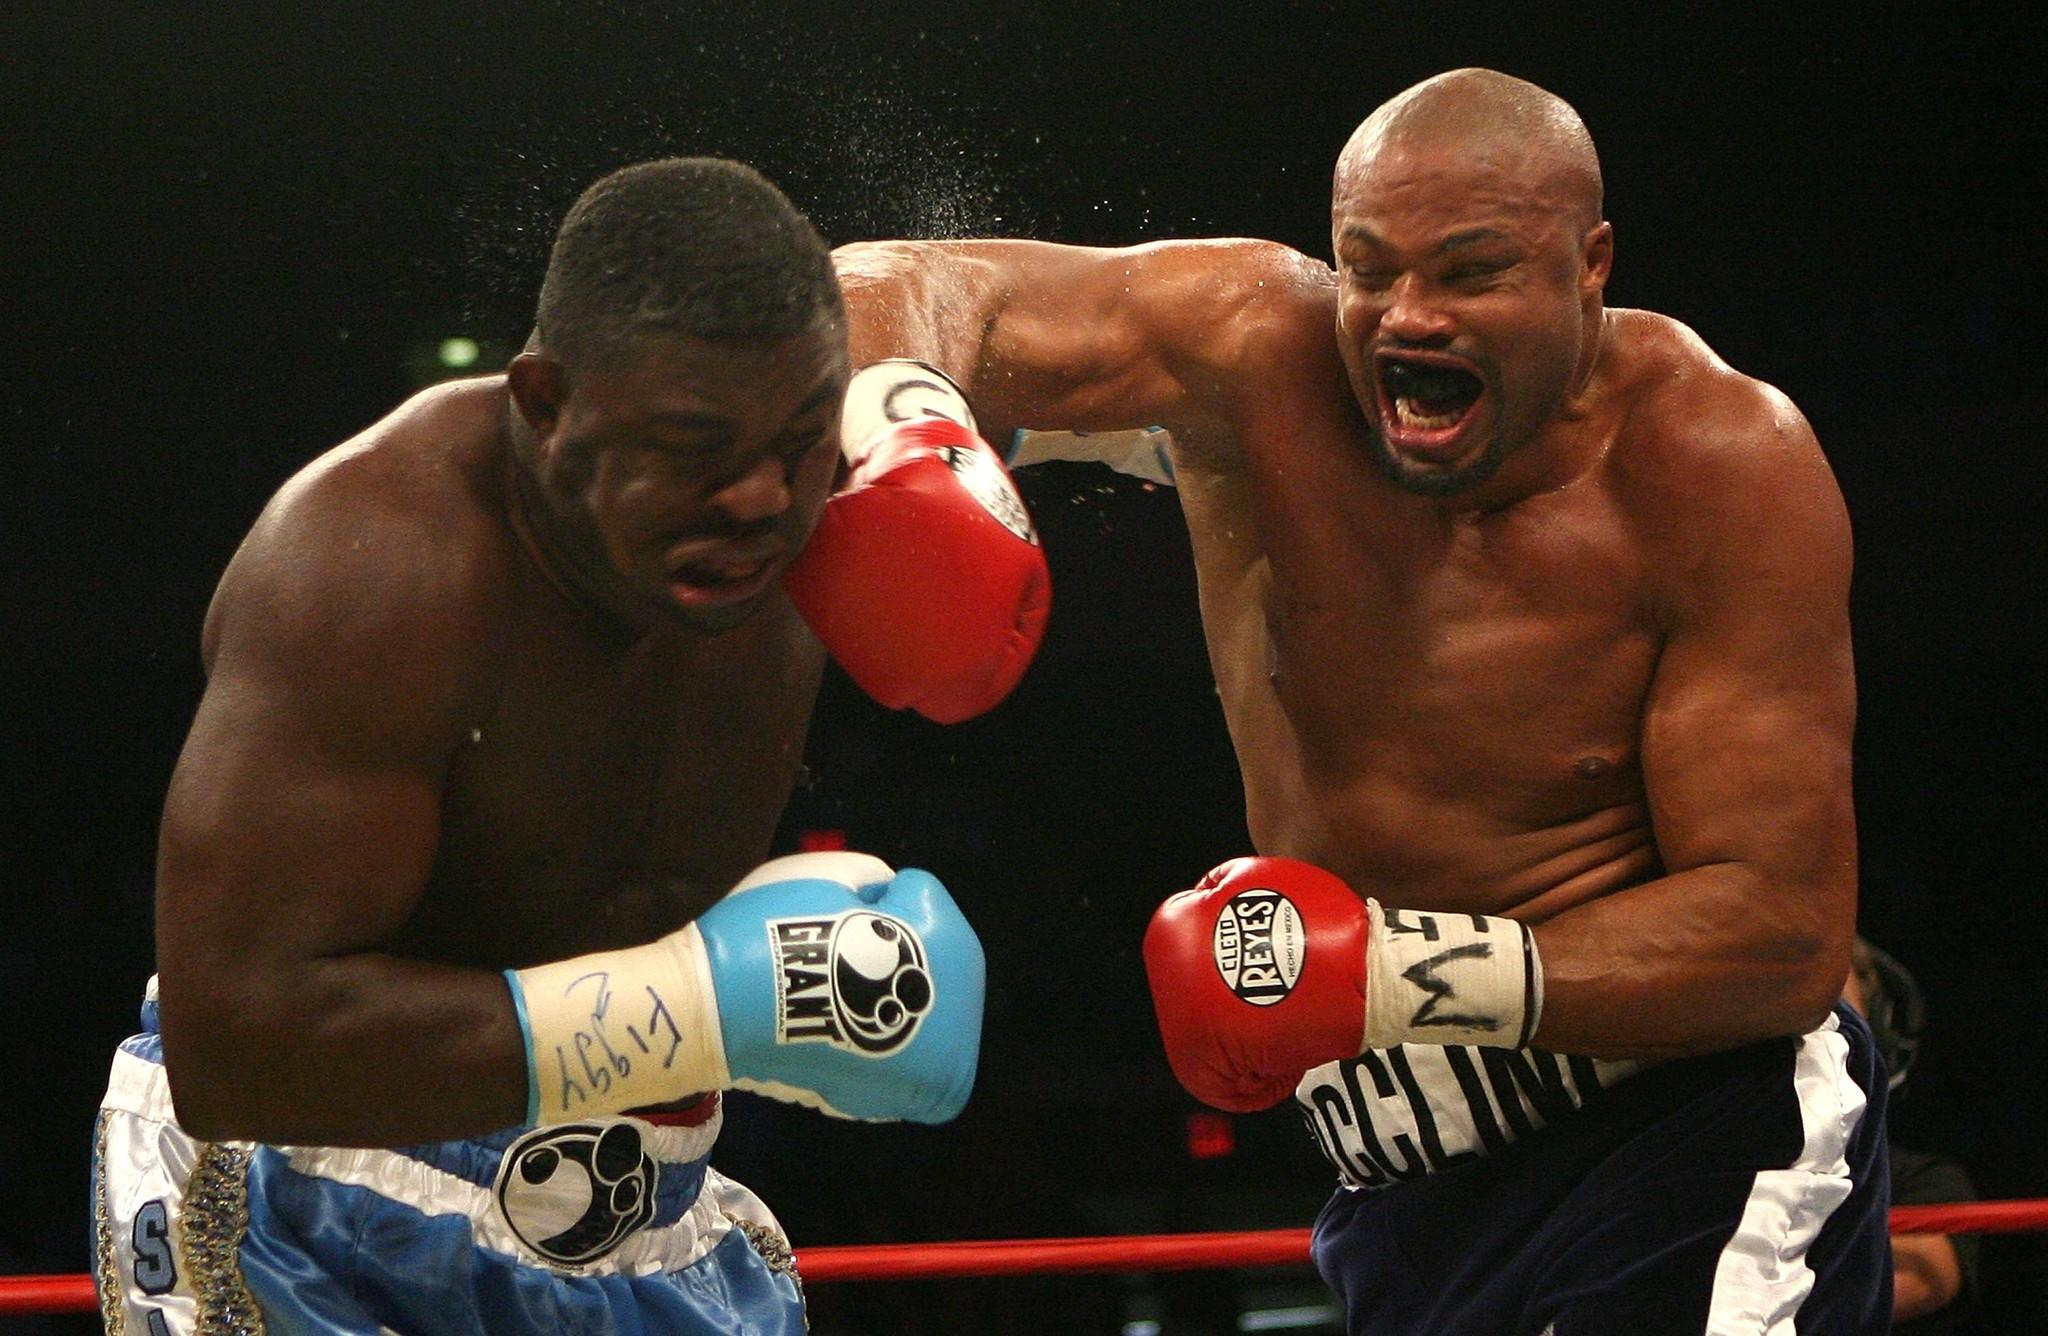 Jameel McCline lands a right on Samuel Peter of Nigeria during their WBC Heavyweight Championship bout on October 6, 2007 at Madison Square Garden in New York City. McCline, a former heavyweight champion, is challenging U.S. Rep. Alcee Hastings, D-Miramar, in the August 2014 Democratic primary. (Photo by Nick Laham/Getty Images)